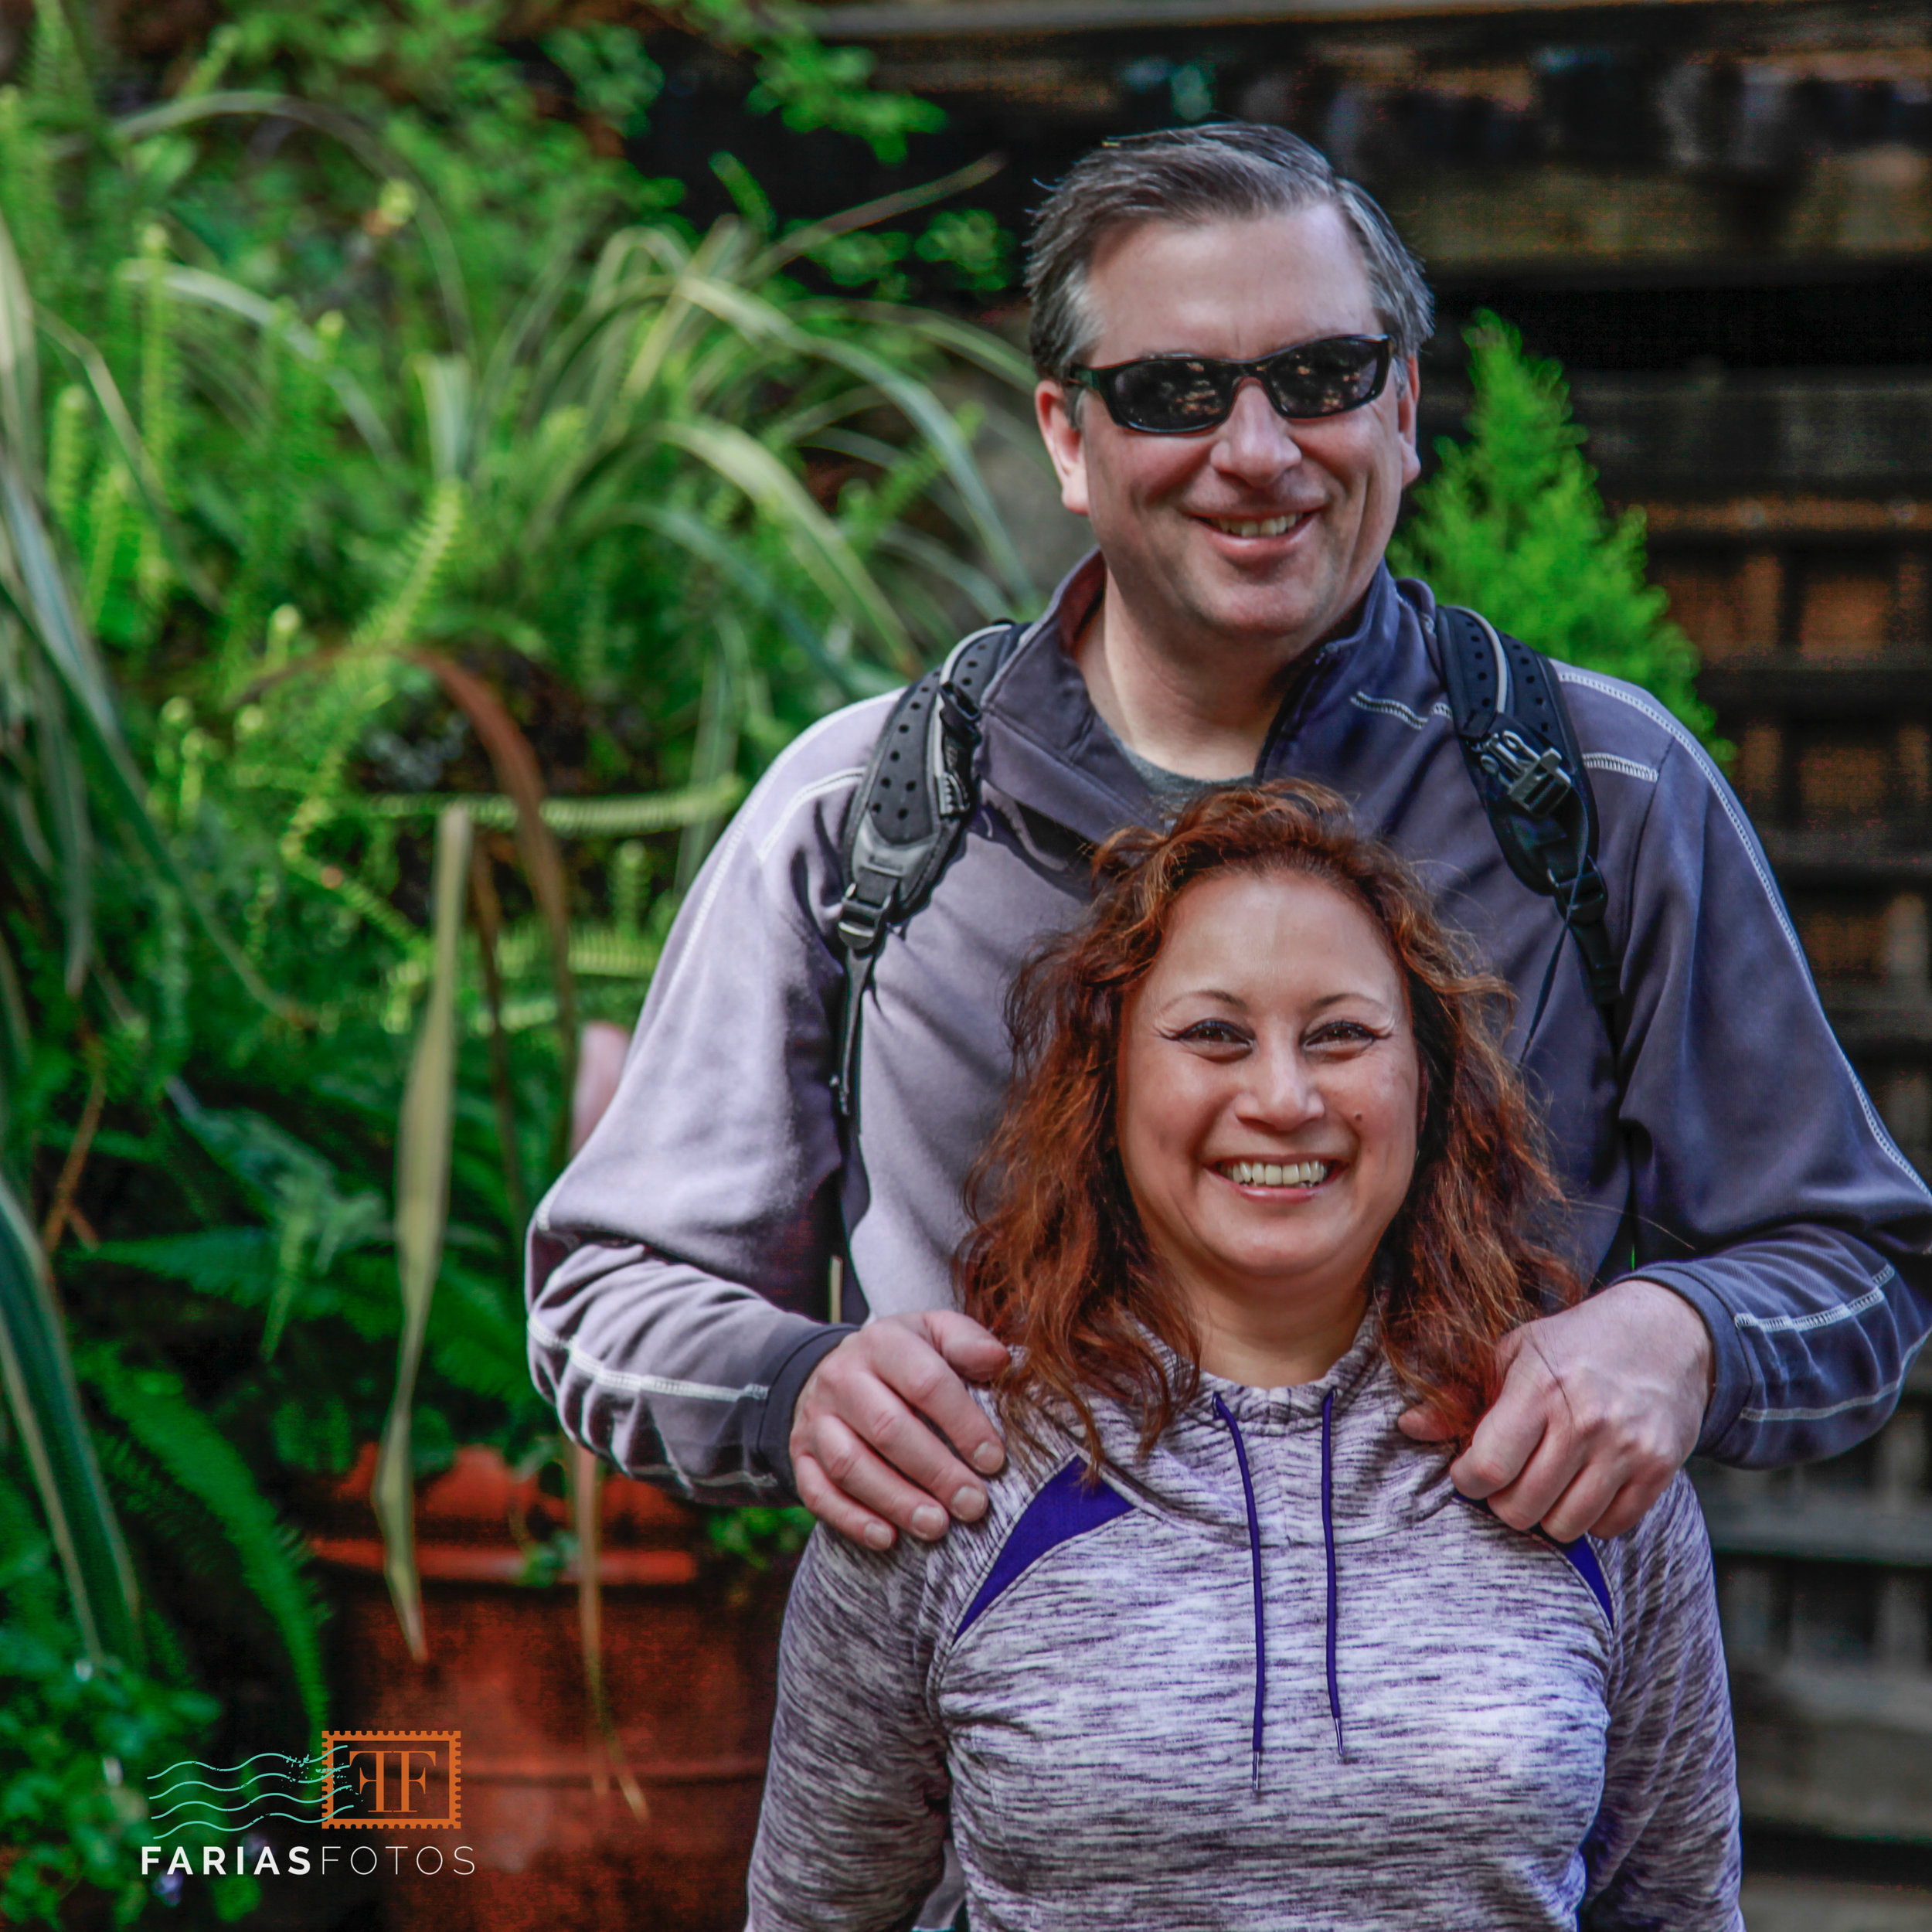 Hiking Napa in 2015 for our 25th and my 50th